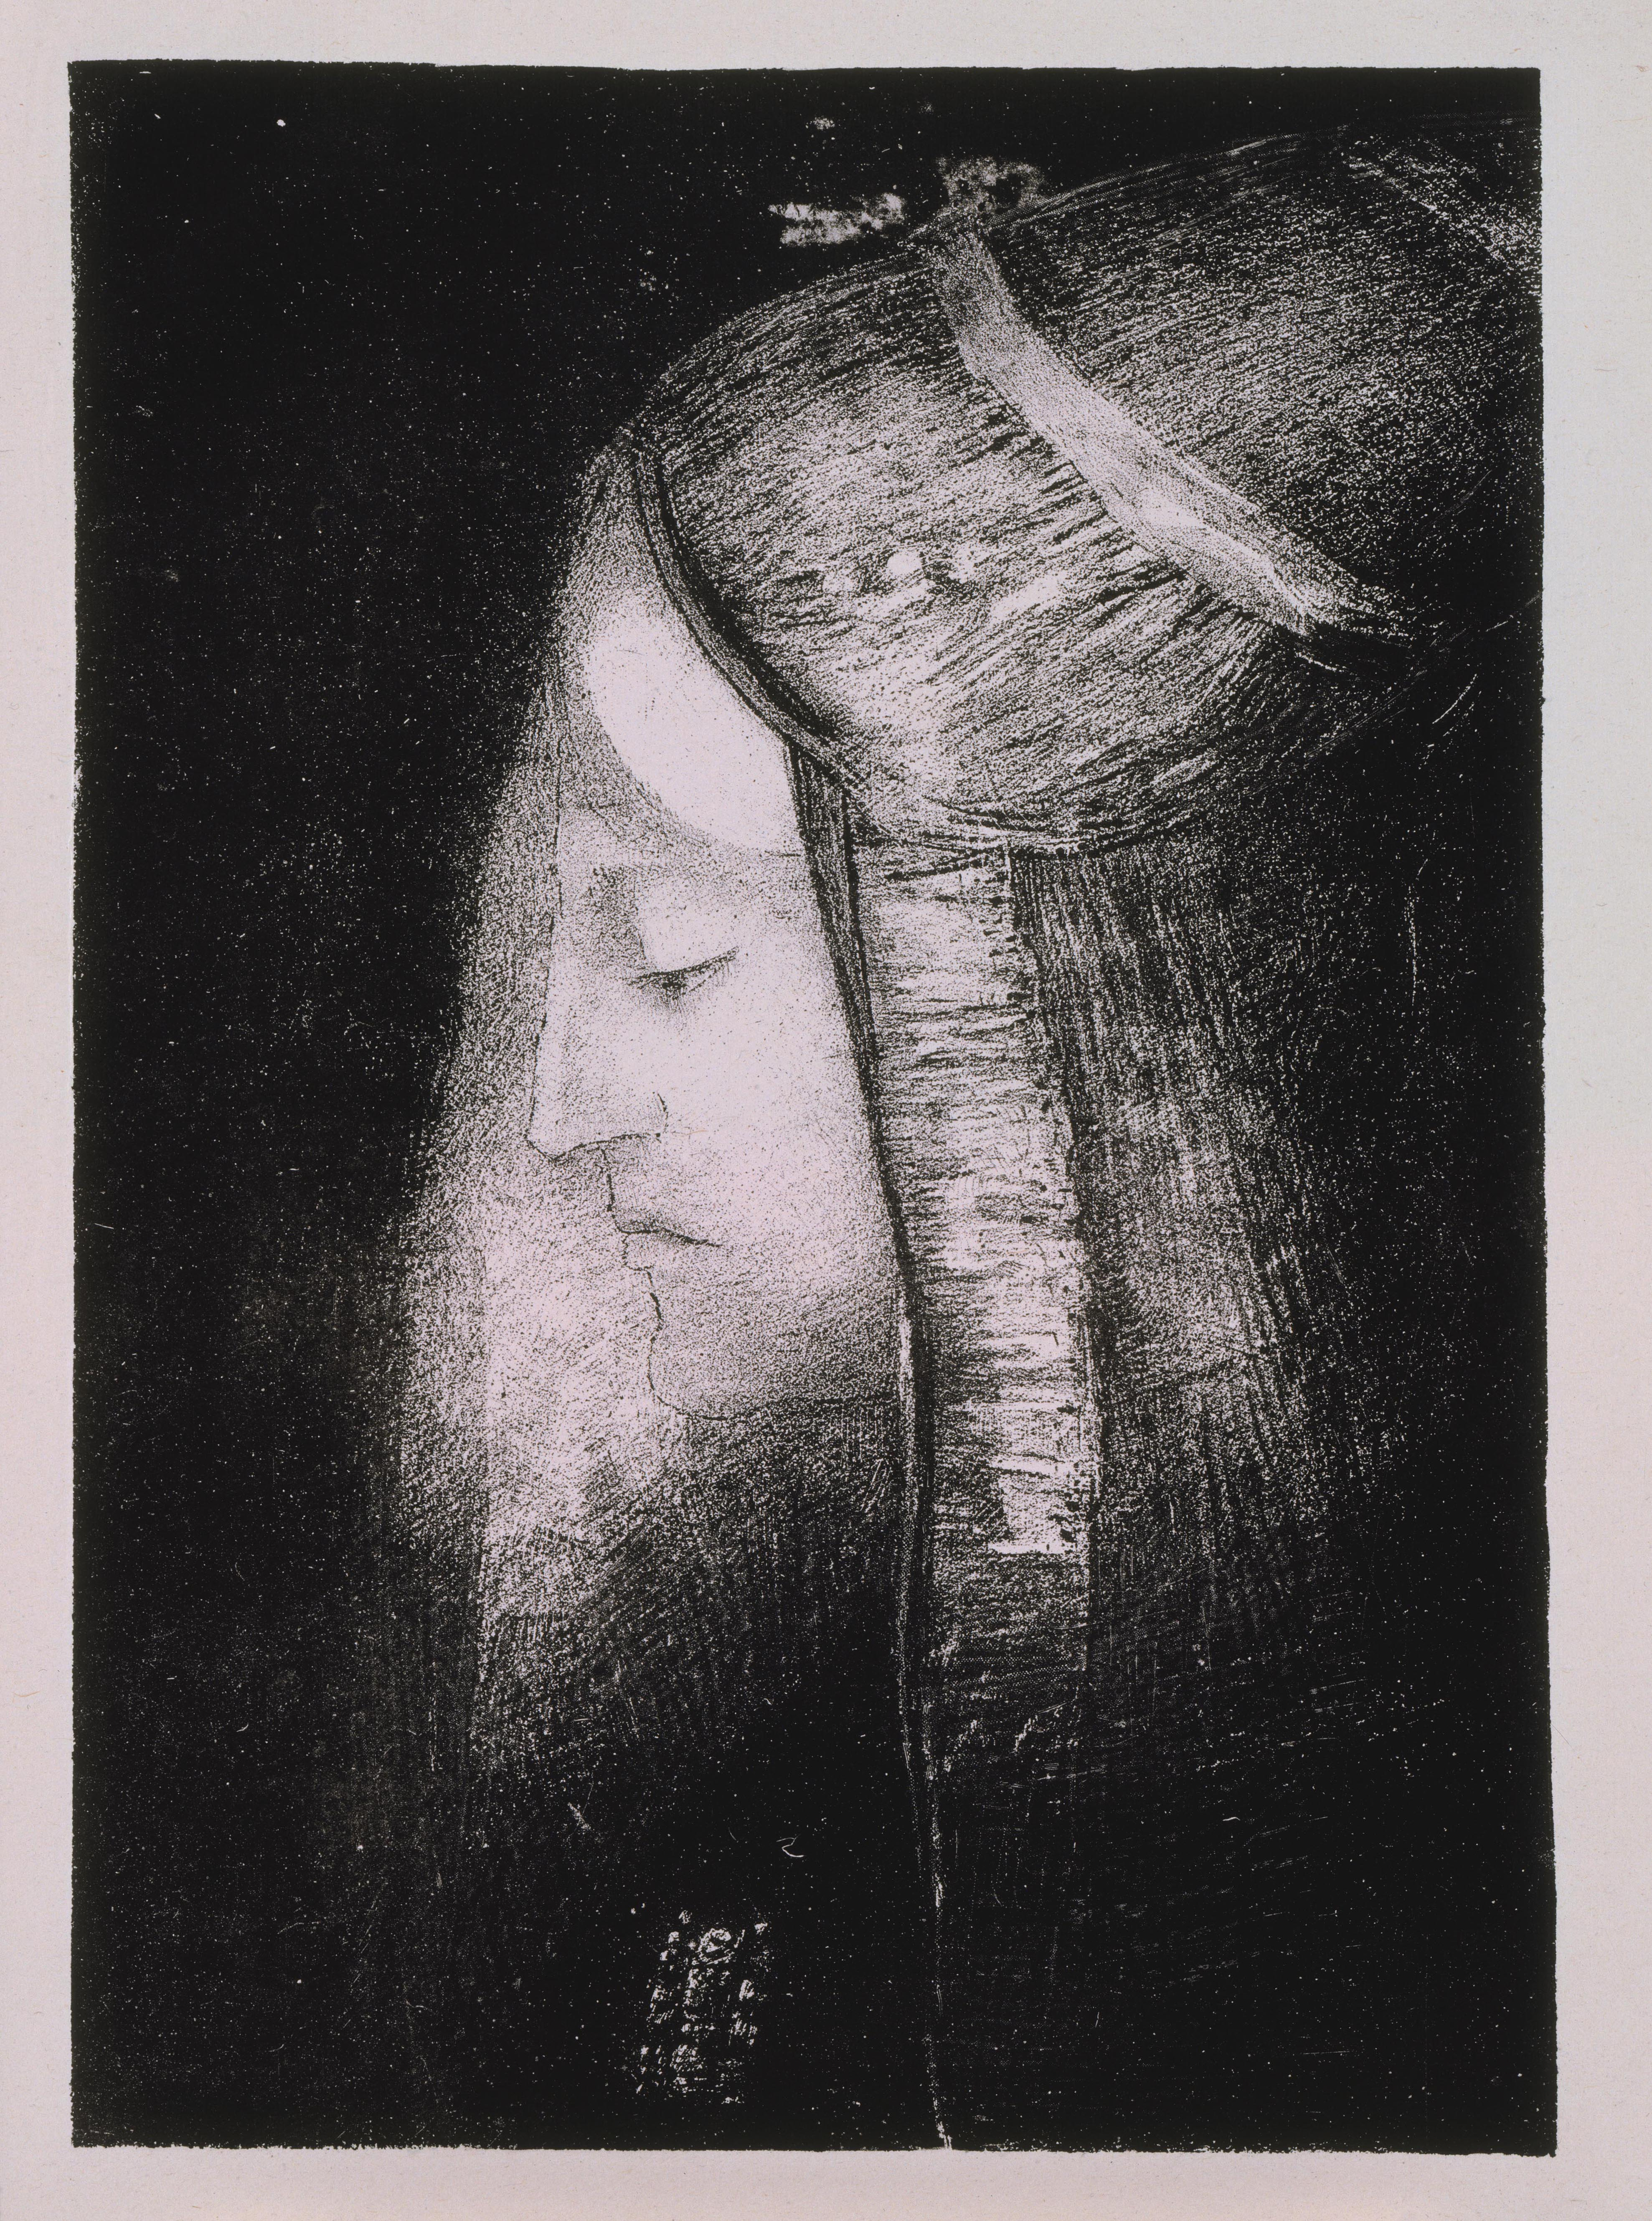 Odilon Redon, Profile of Light, 1886